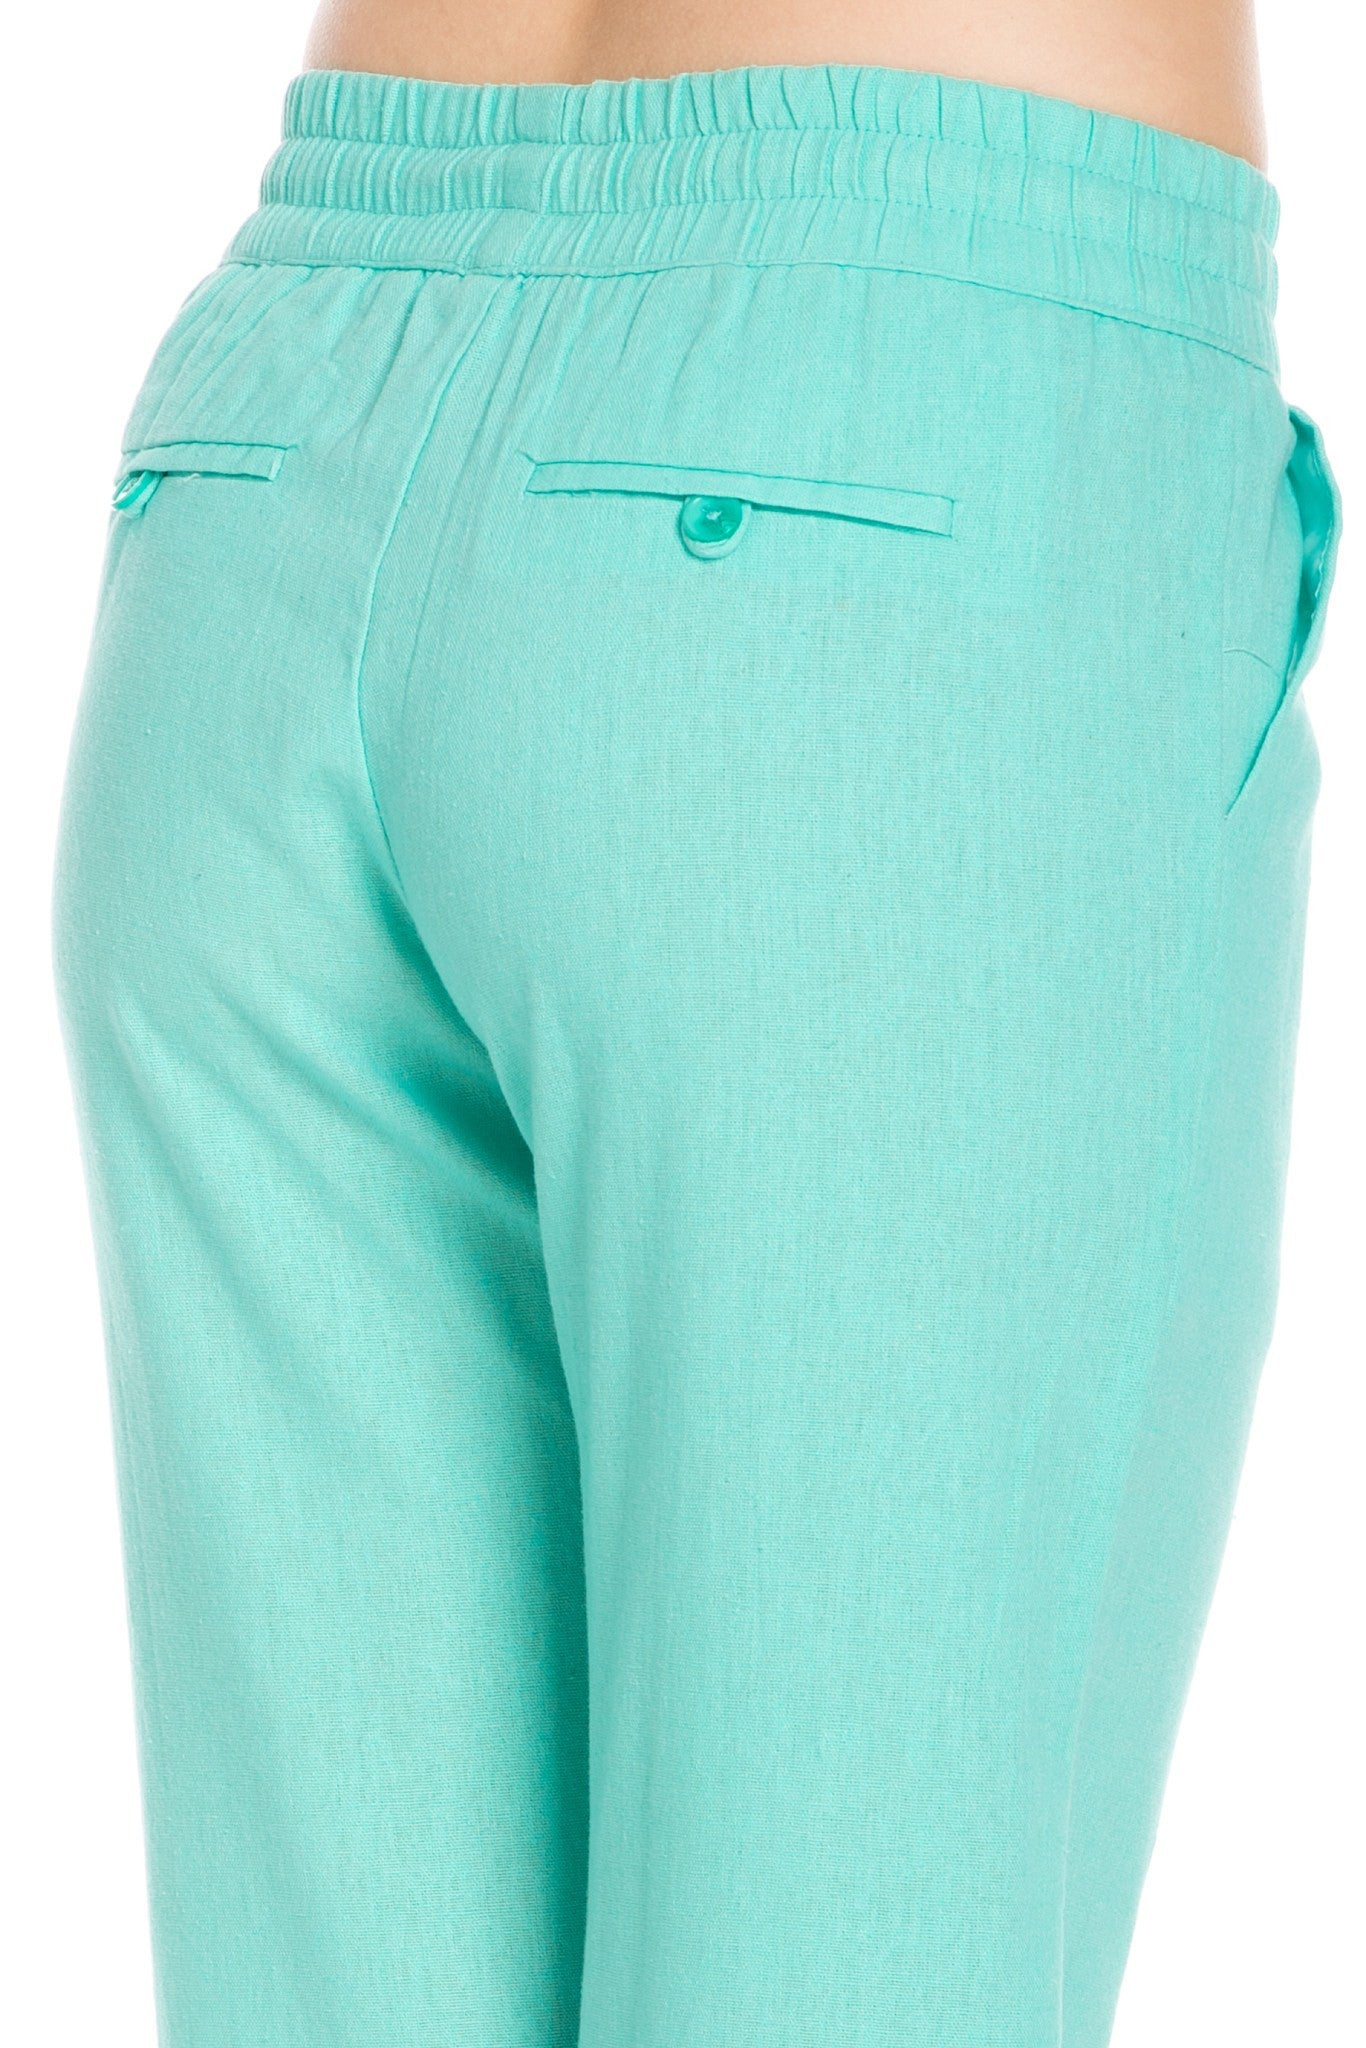 Comfy Drawstring Linen Pants Long with Band Waist (Mint) - Poplooks